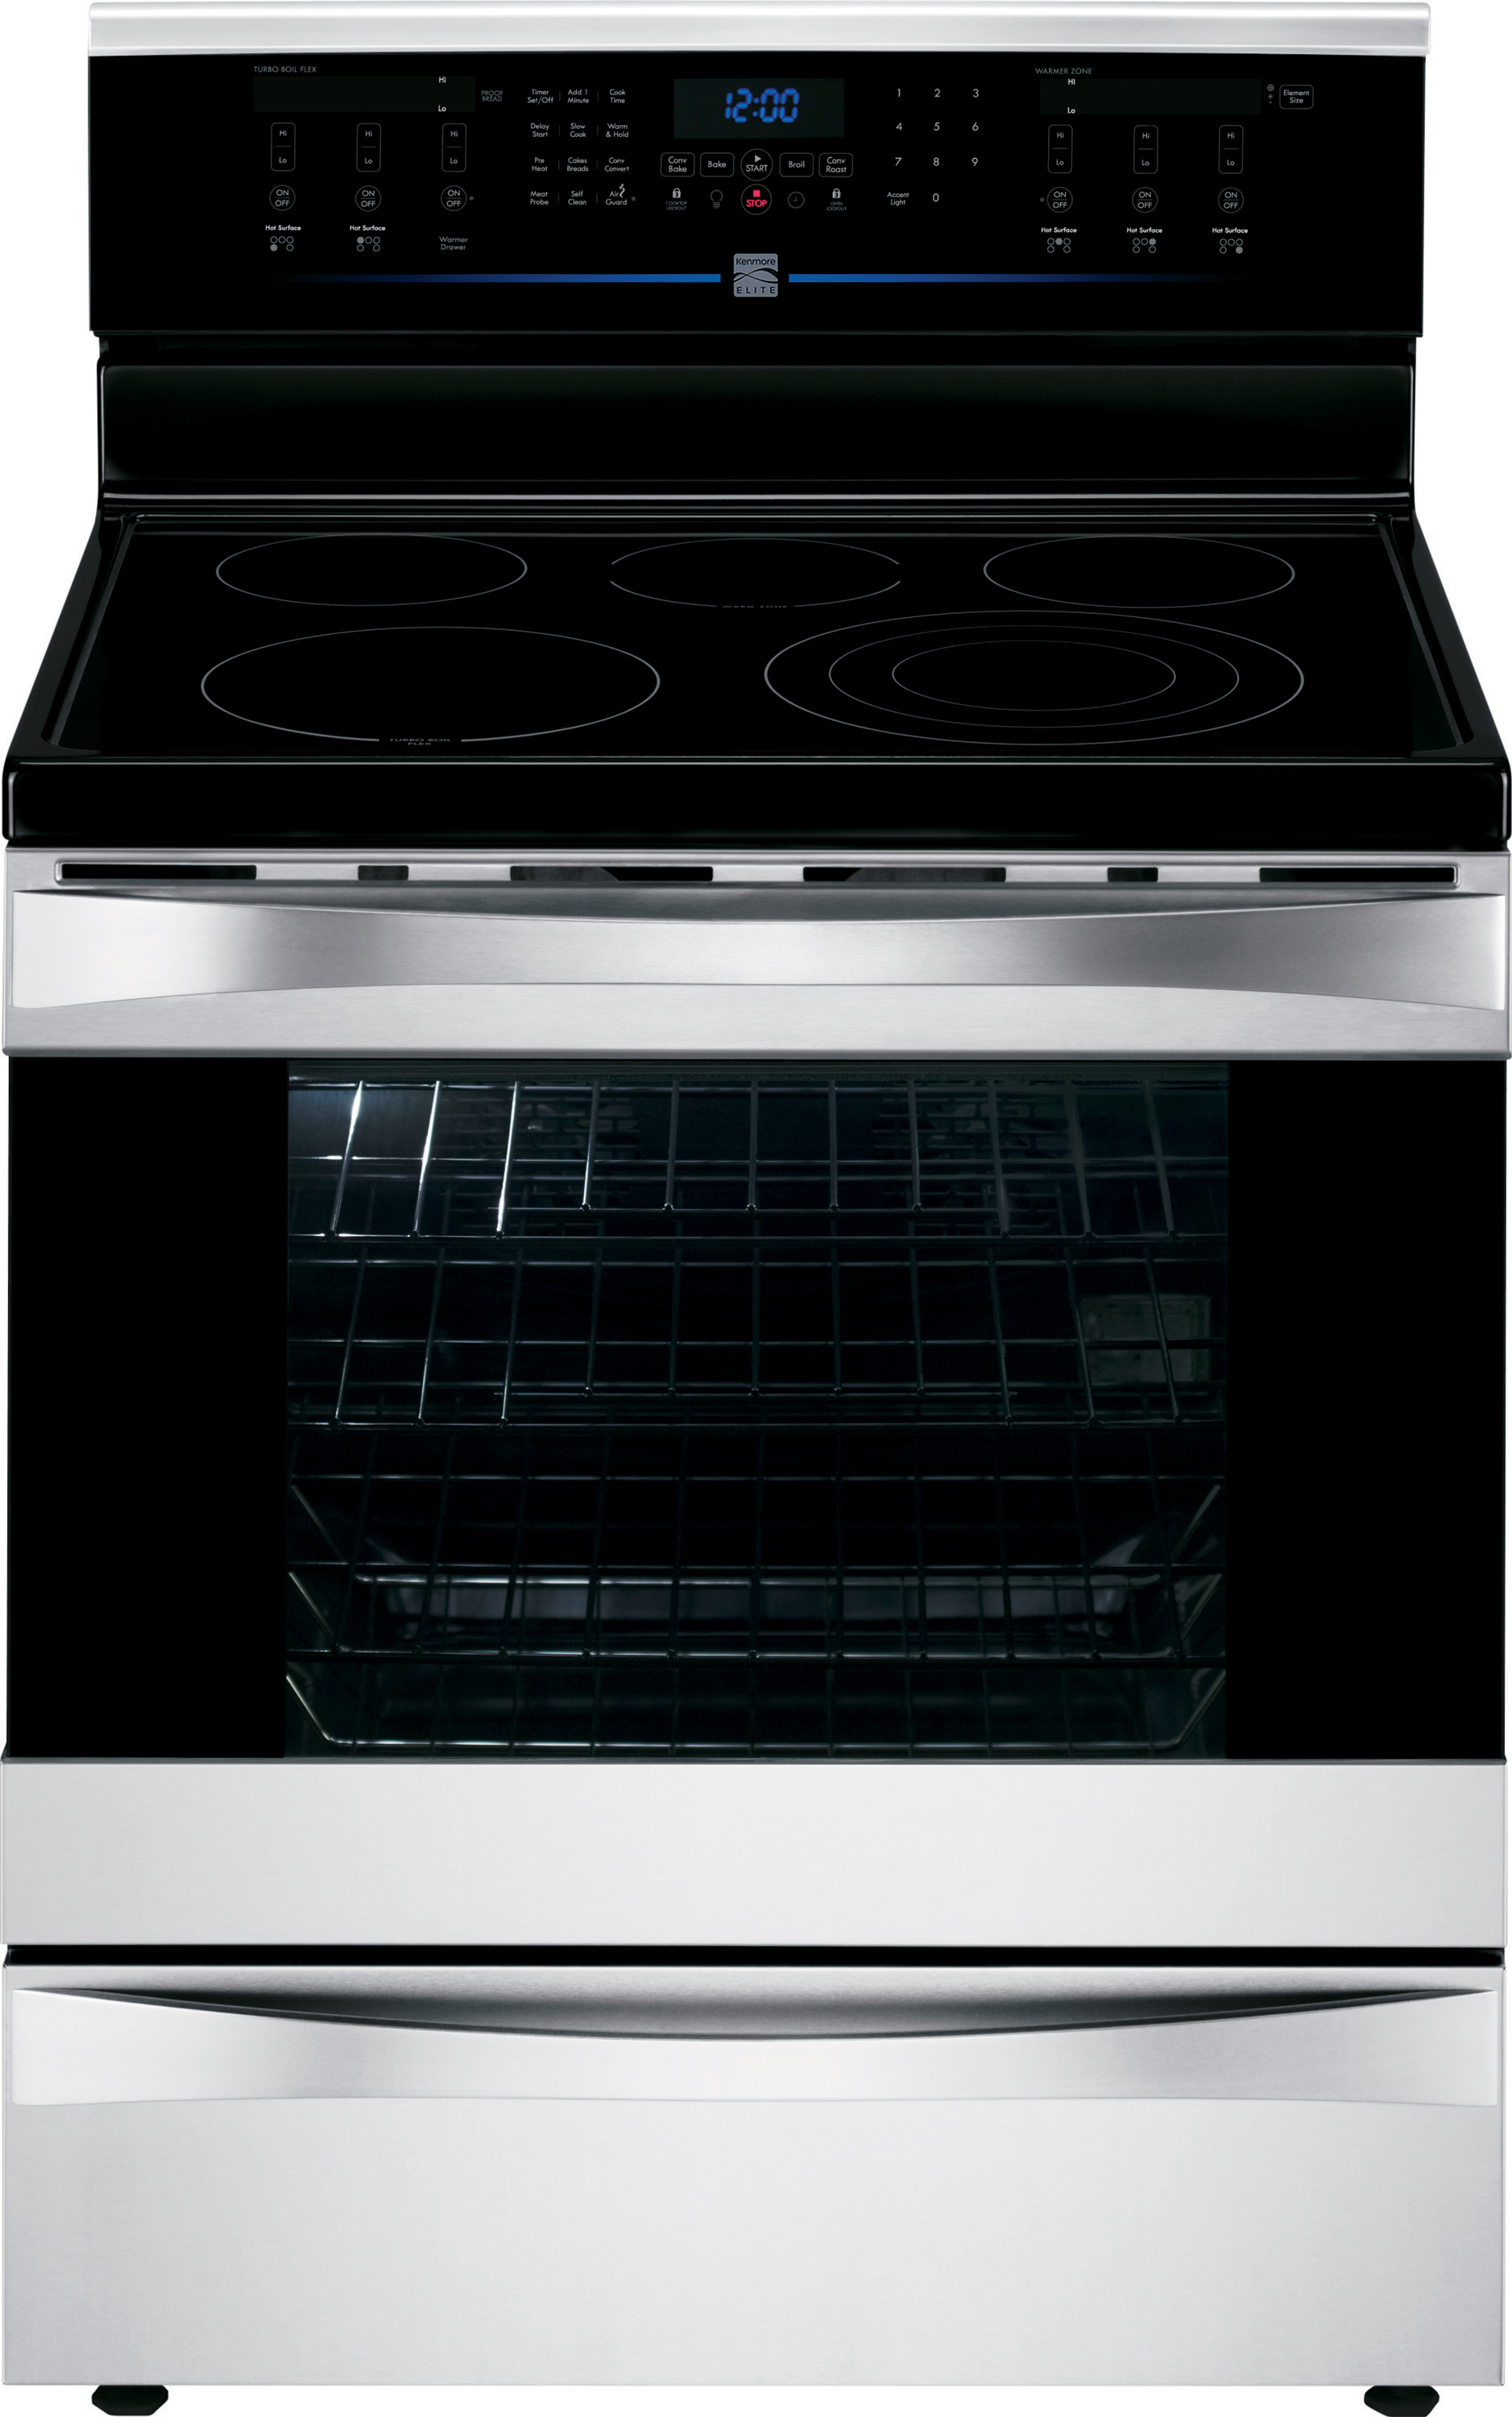 Kenmore Elite 6.1 cu. ft. Electric Range w/ Dual True Convection - Stainless Steel